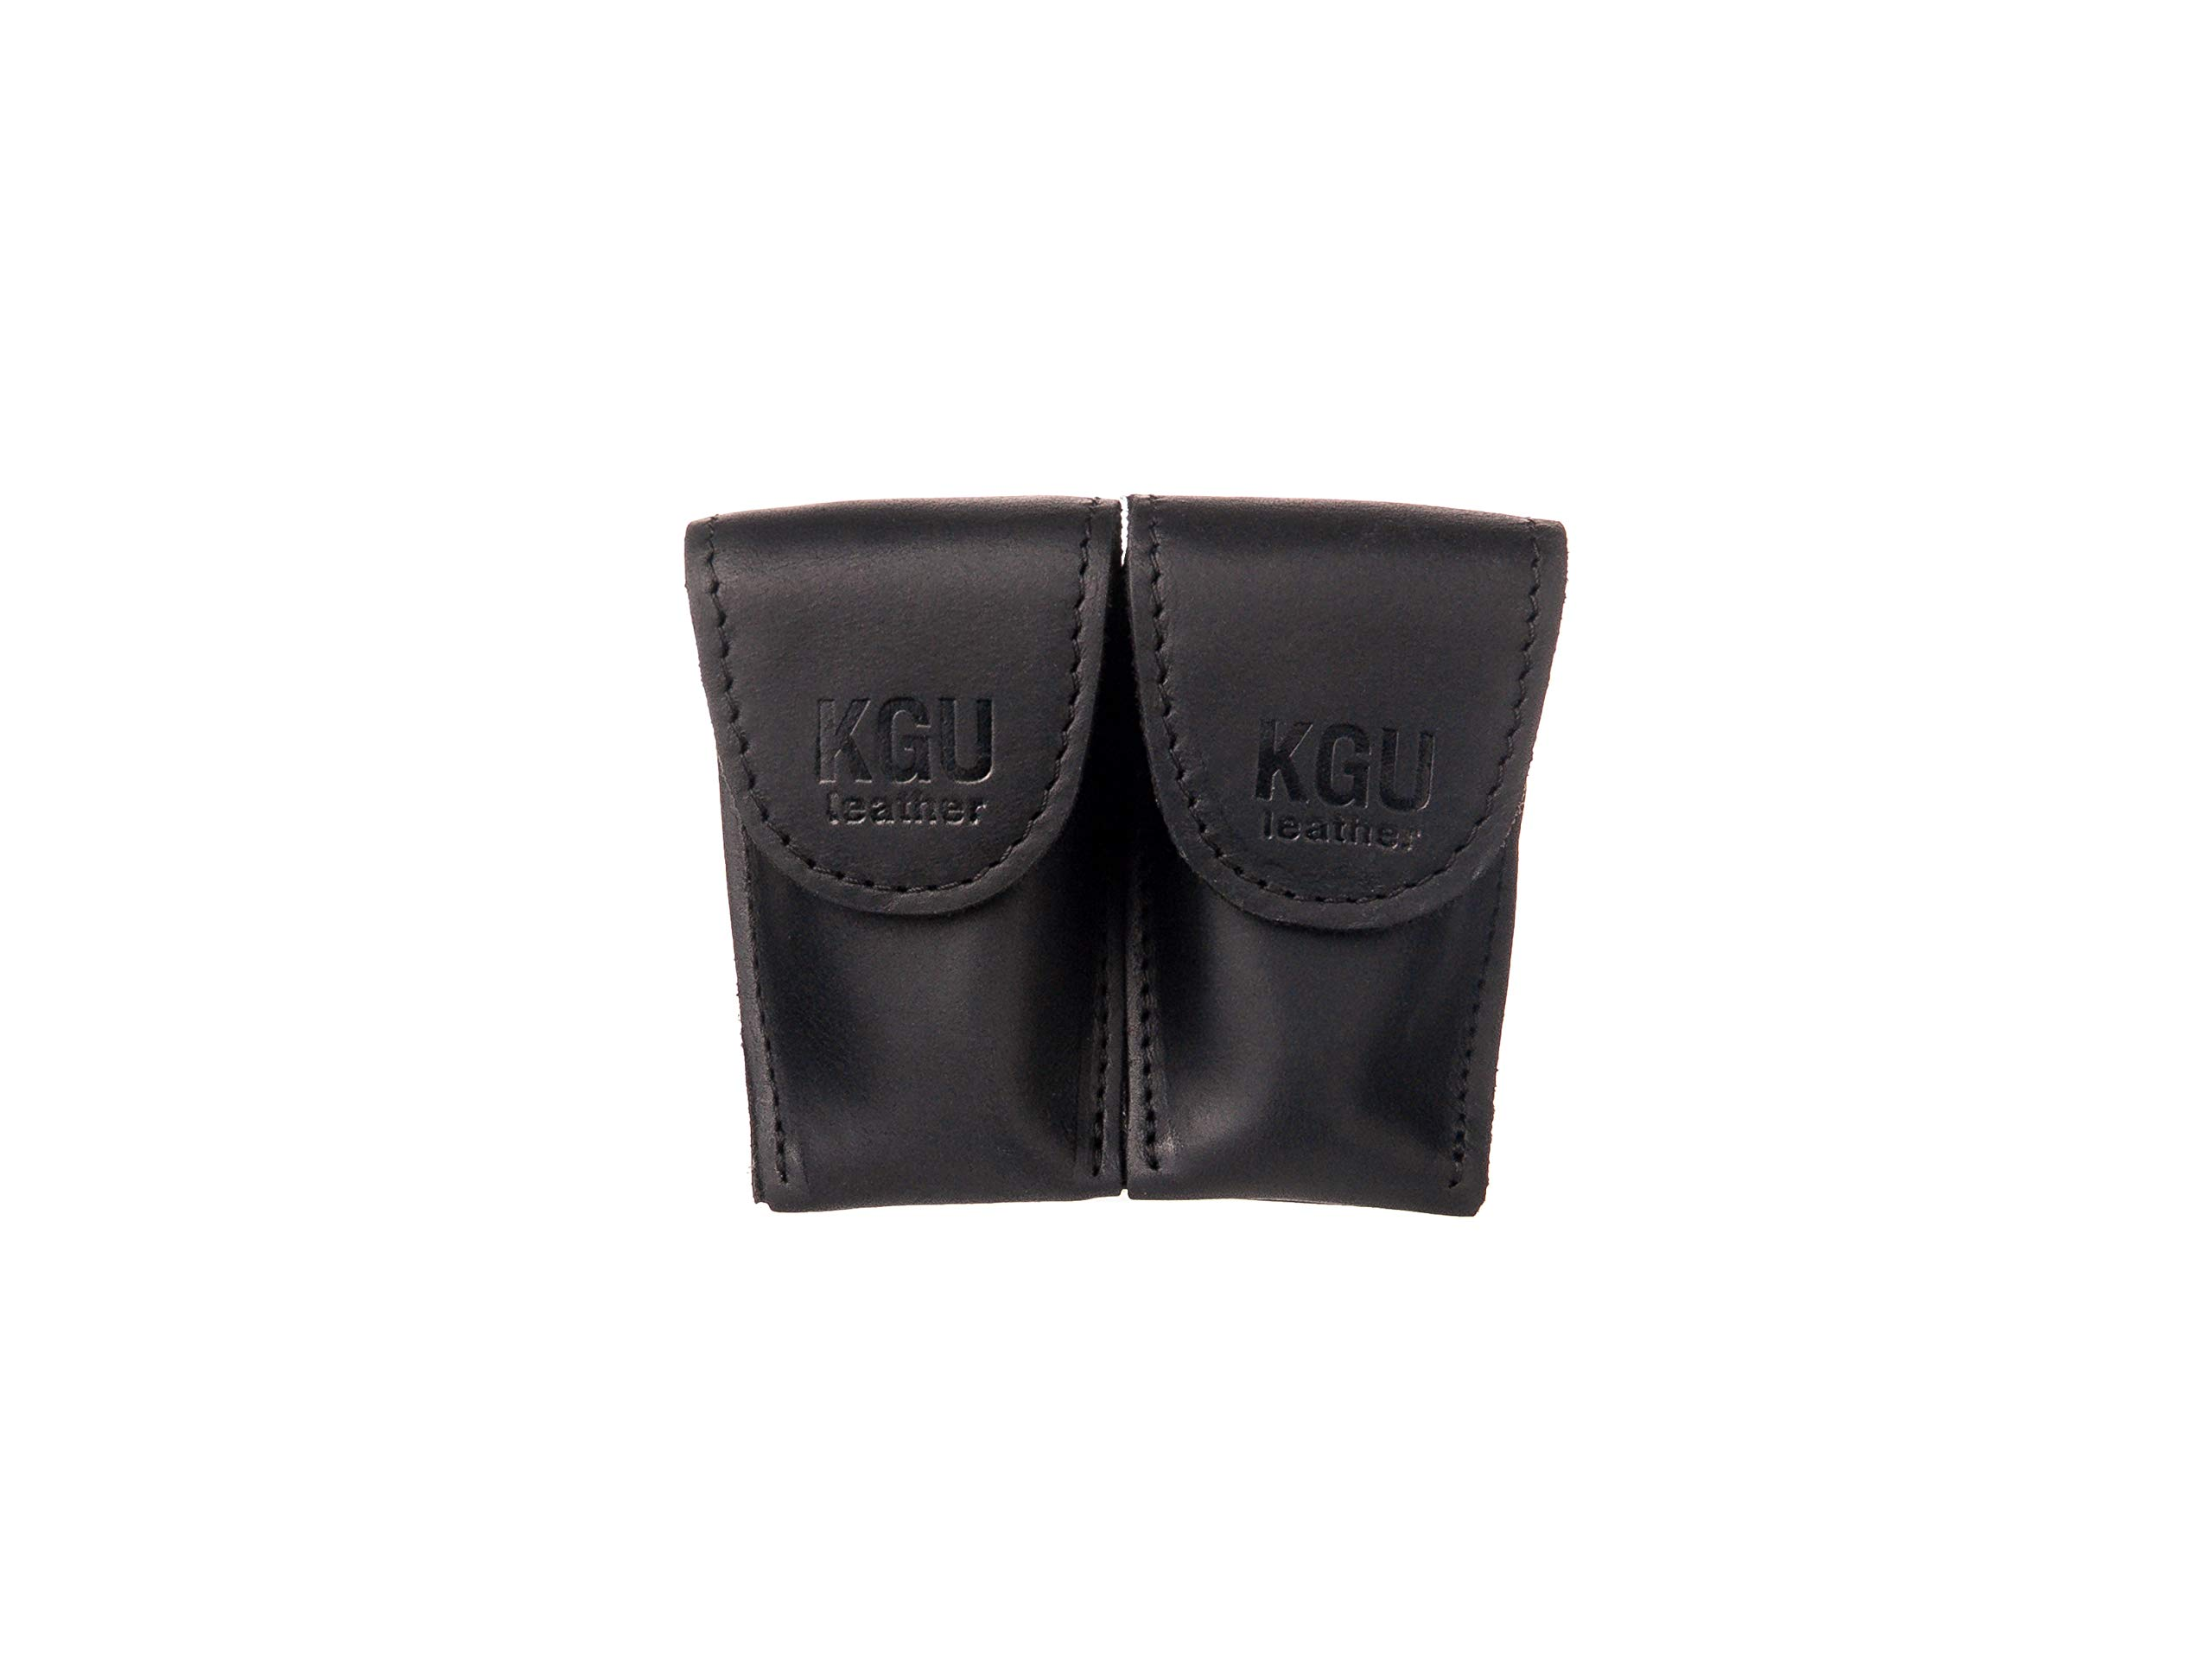 FRENCH HORN MOUTHPIECE POUCH (3 MODELS). CRAZY HORSE LEATHER. (Double, Black)